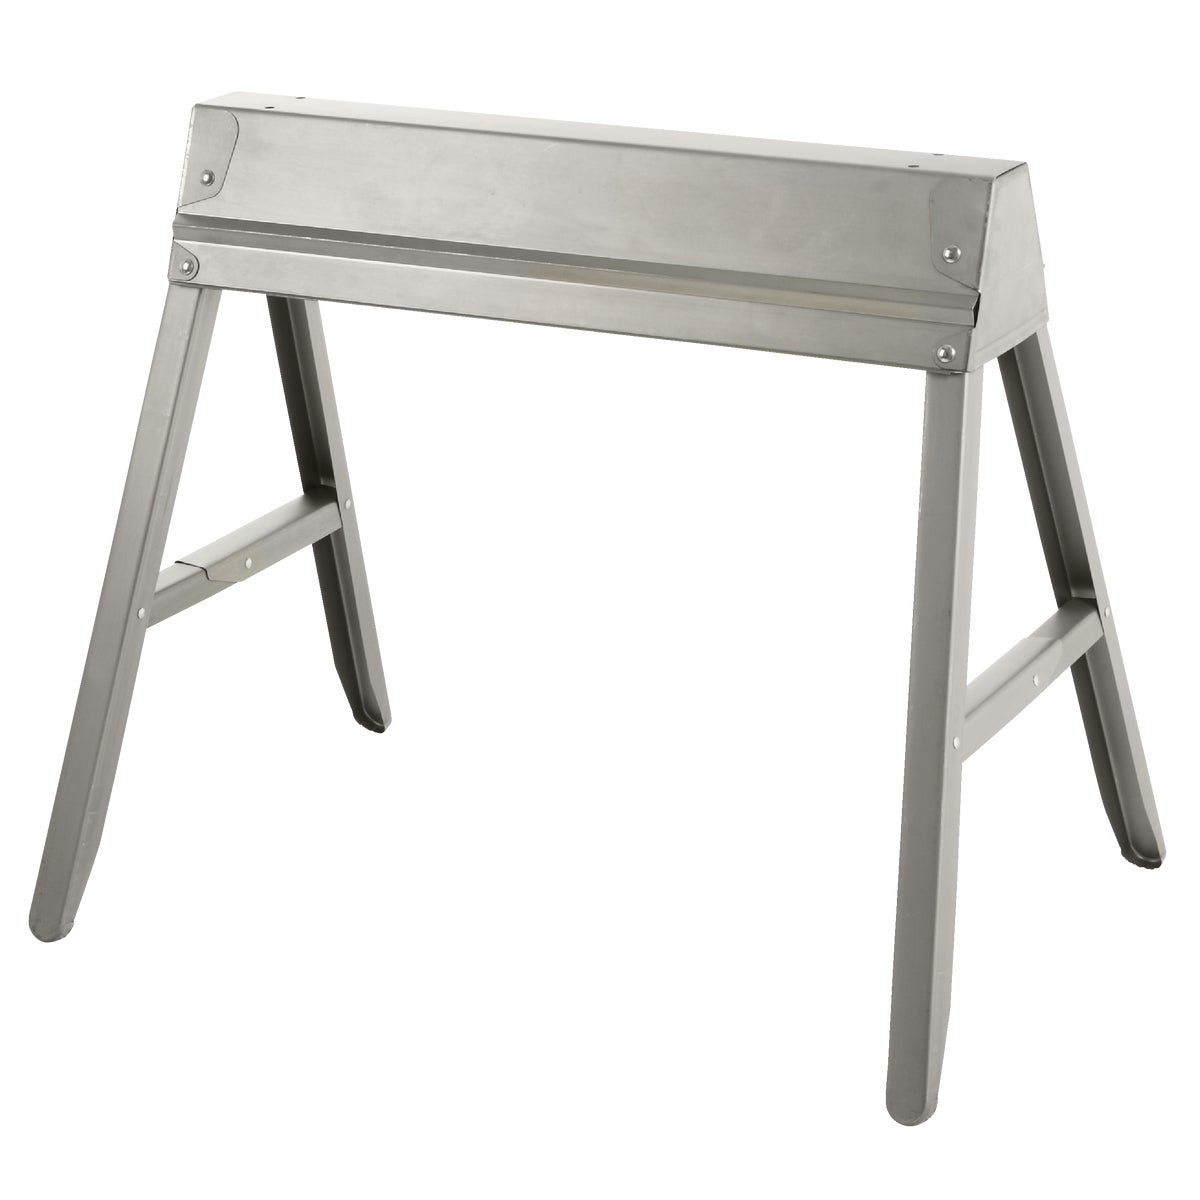 GALVANIZED SAWHORSE - 380687 by Fulton Corp